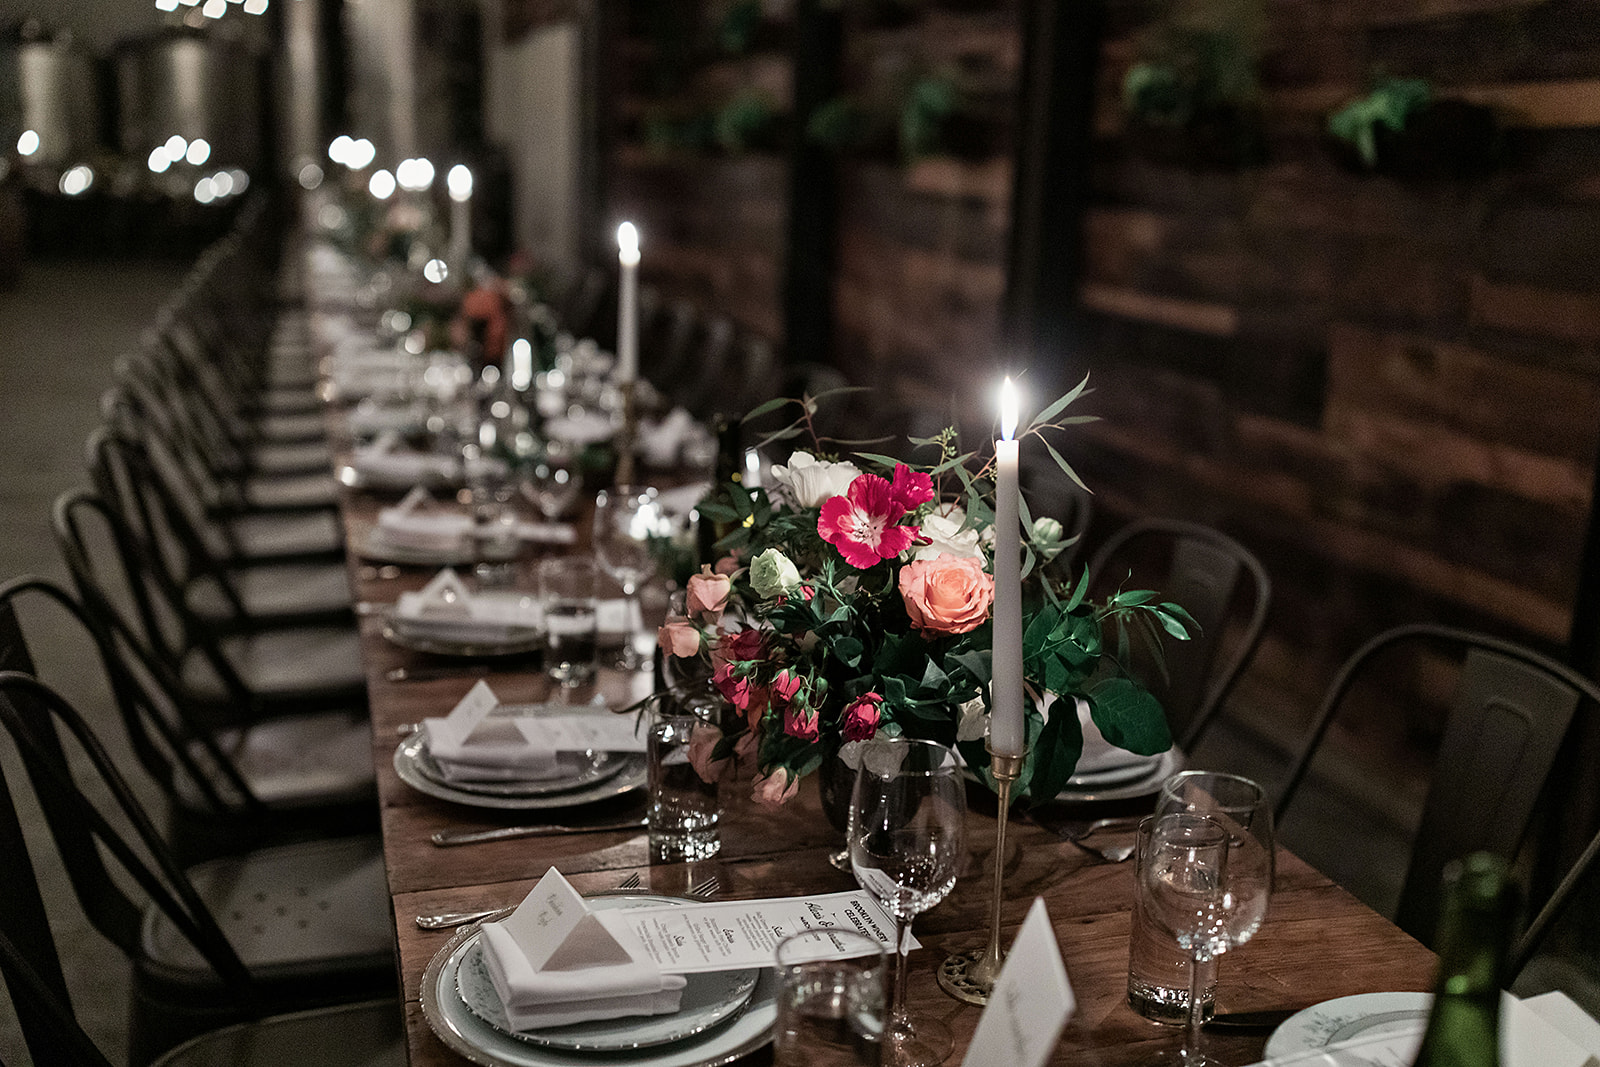 Flowers and Tapered Candles